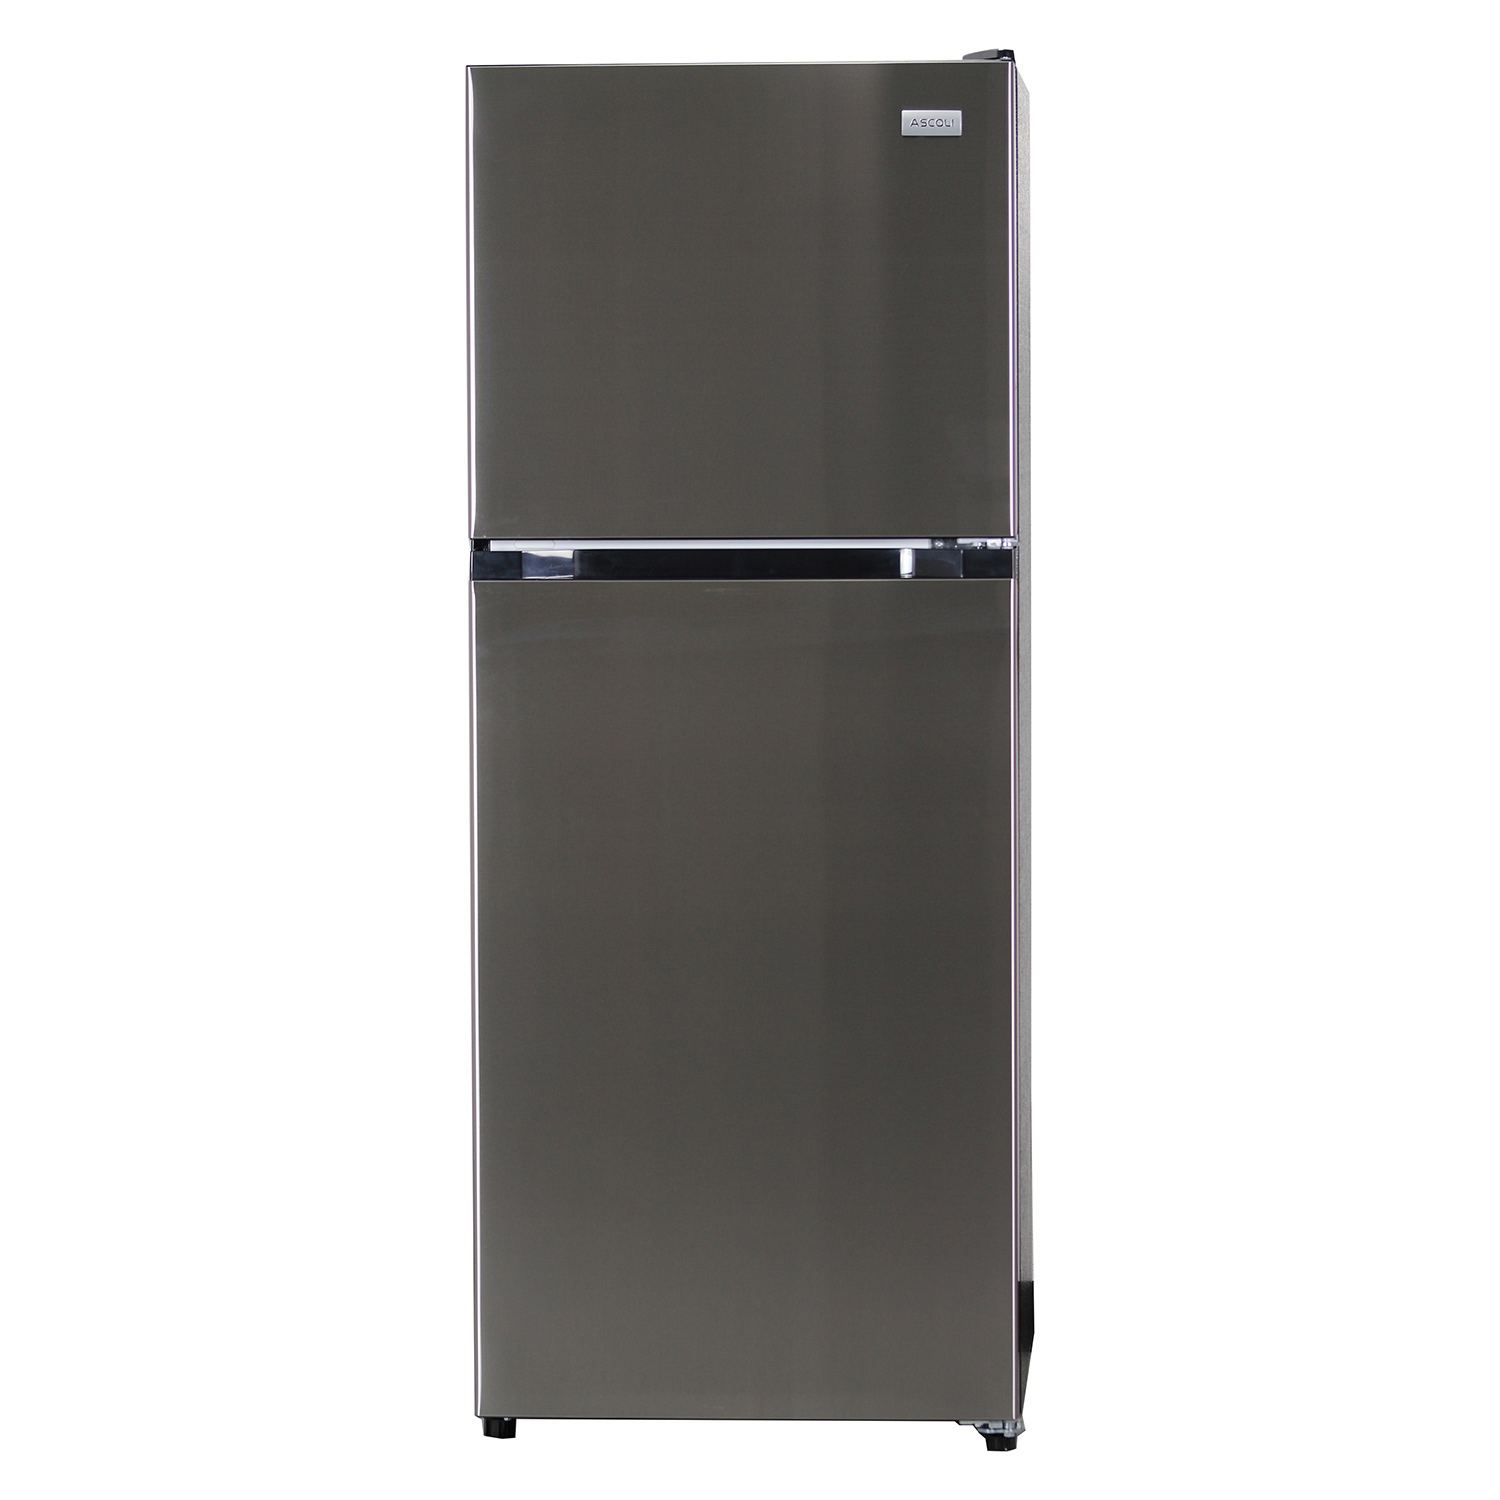 Equator-Conserv 10.5 cu.ft. Refrigerator-Top Freezer Stainless